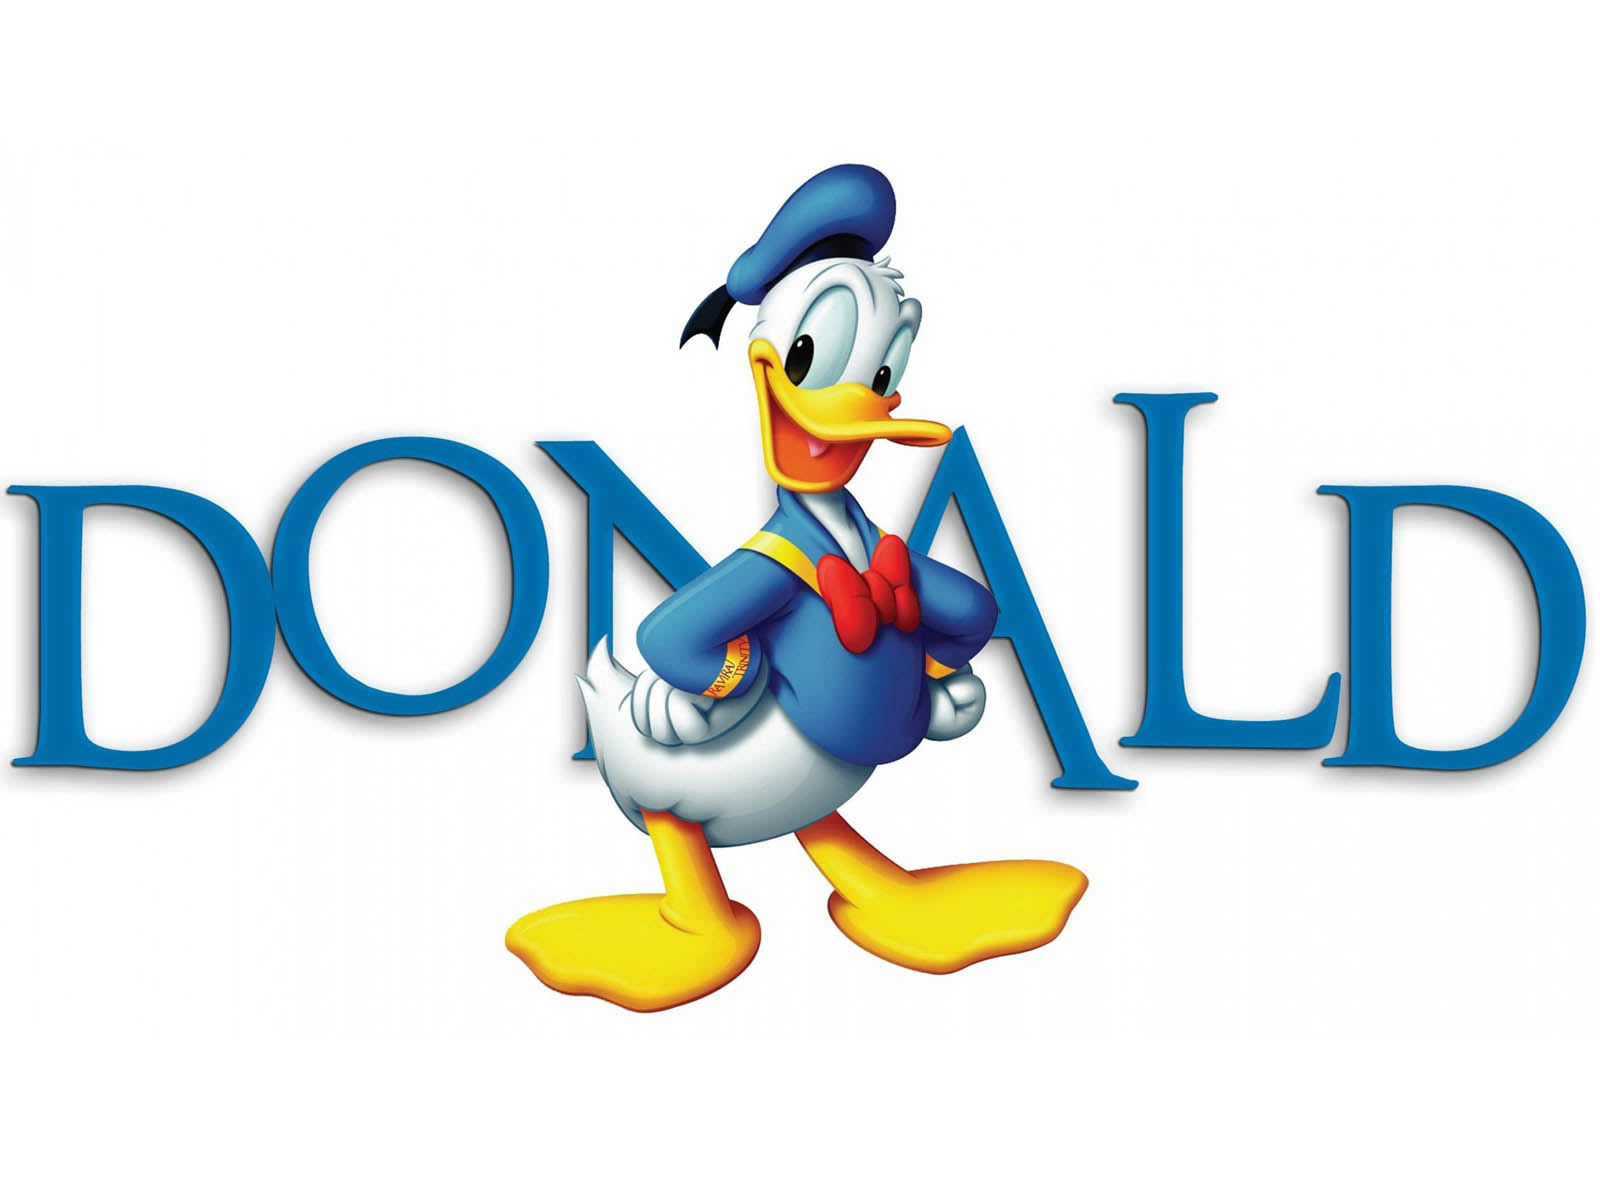 Donald Duck Hd Wallpapers Free Hd Wallpapers